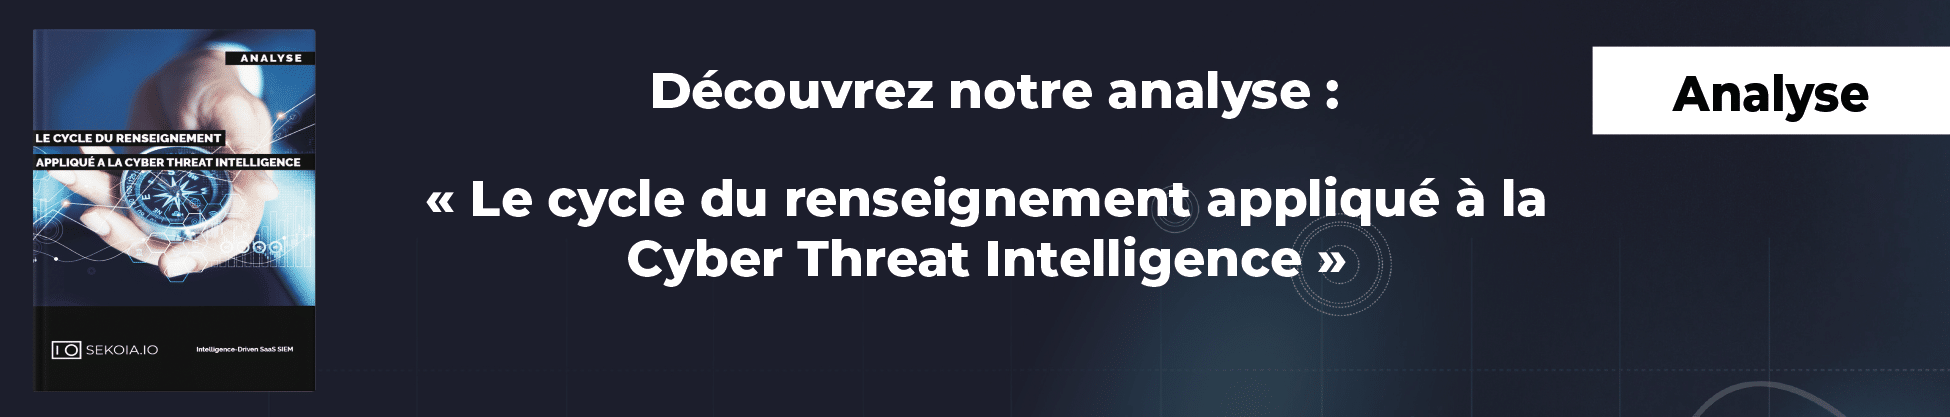 Banner of the intelligence cycle applied to threat intelligence analysis